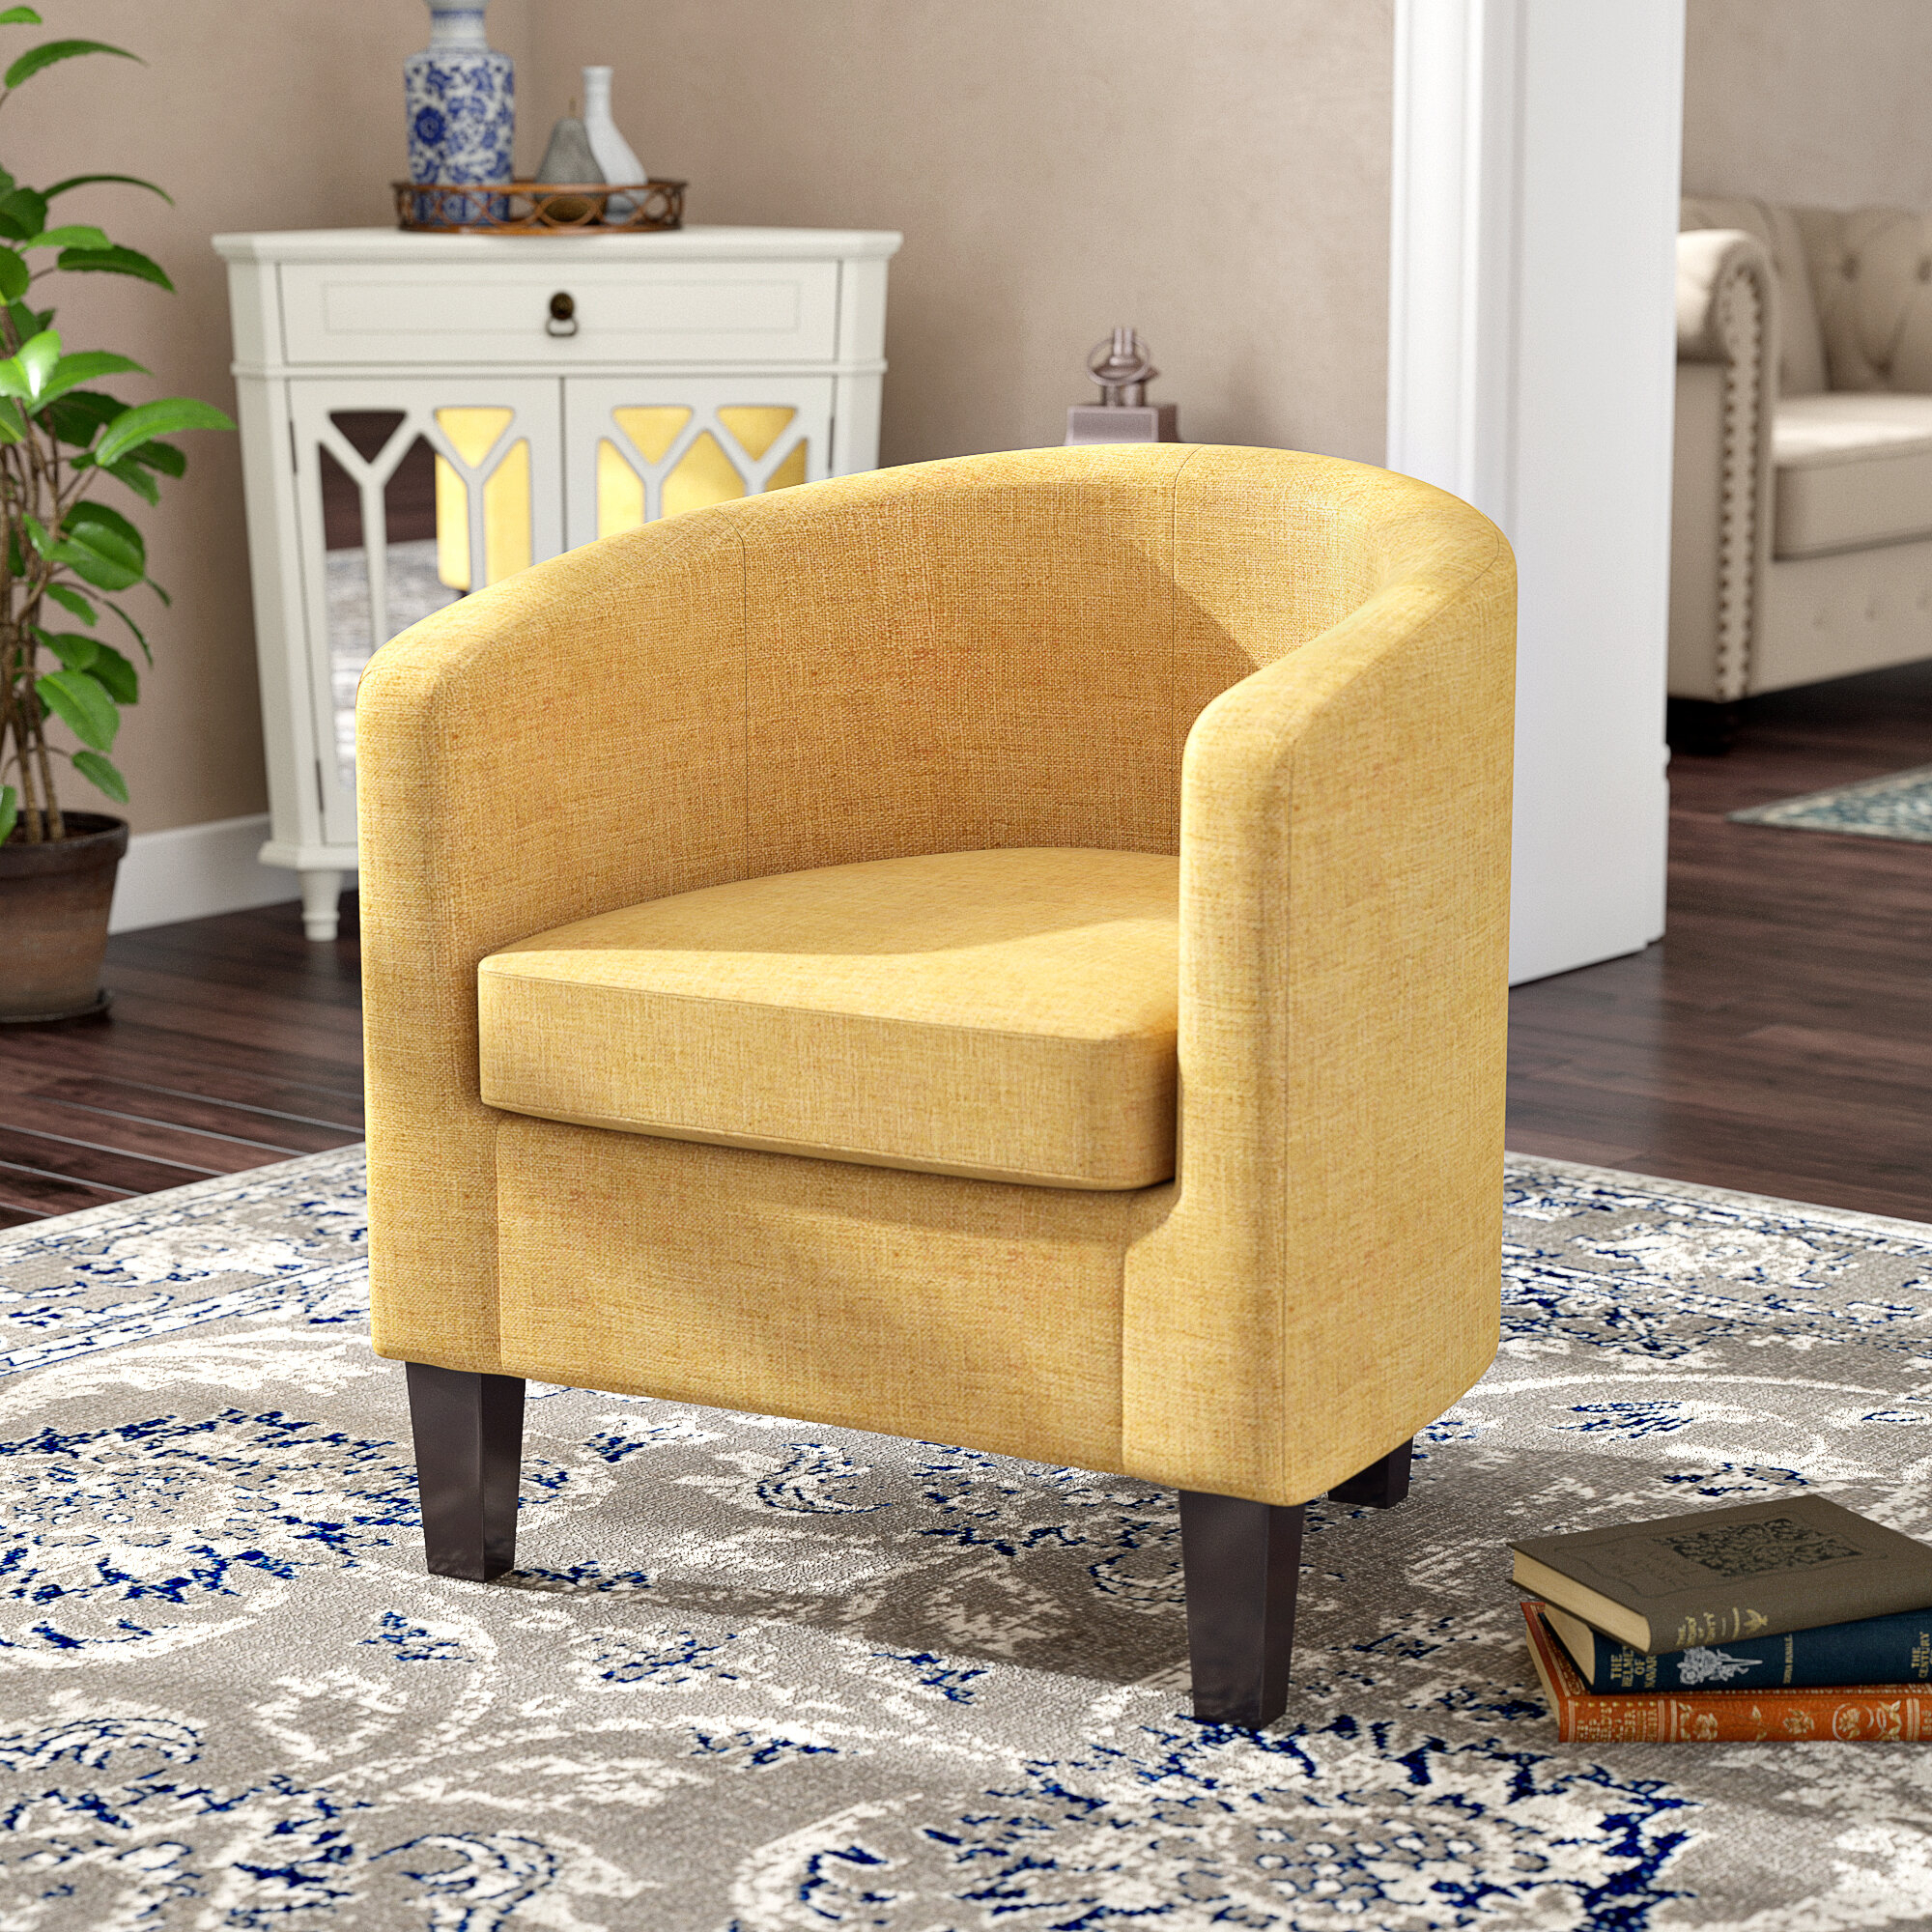 Adelia Barrel Chair With Regard To Navin Barrel Chairs (View 4 of 15)